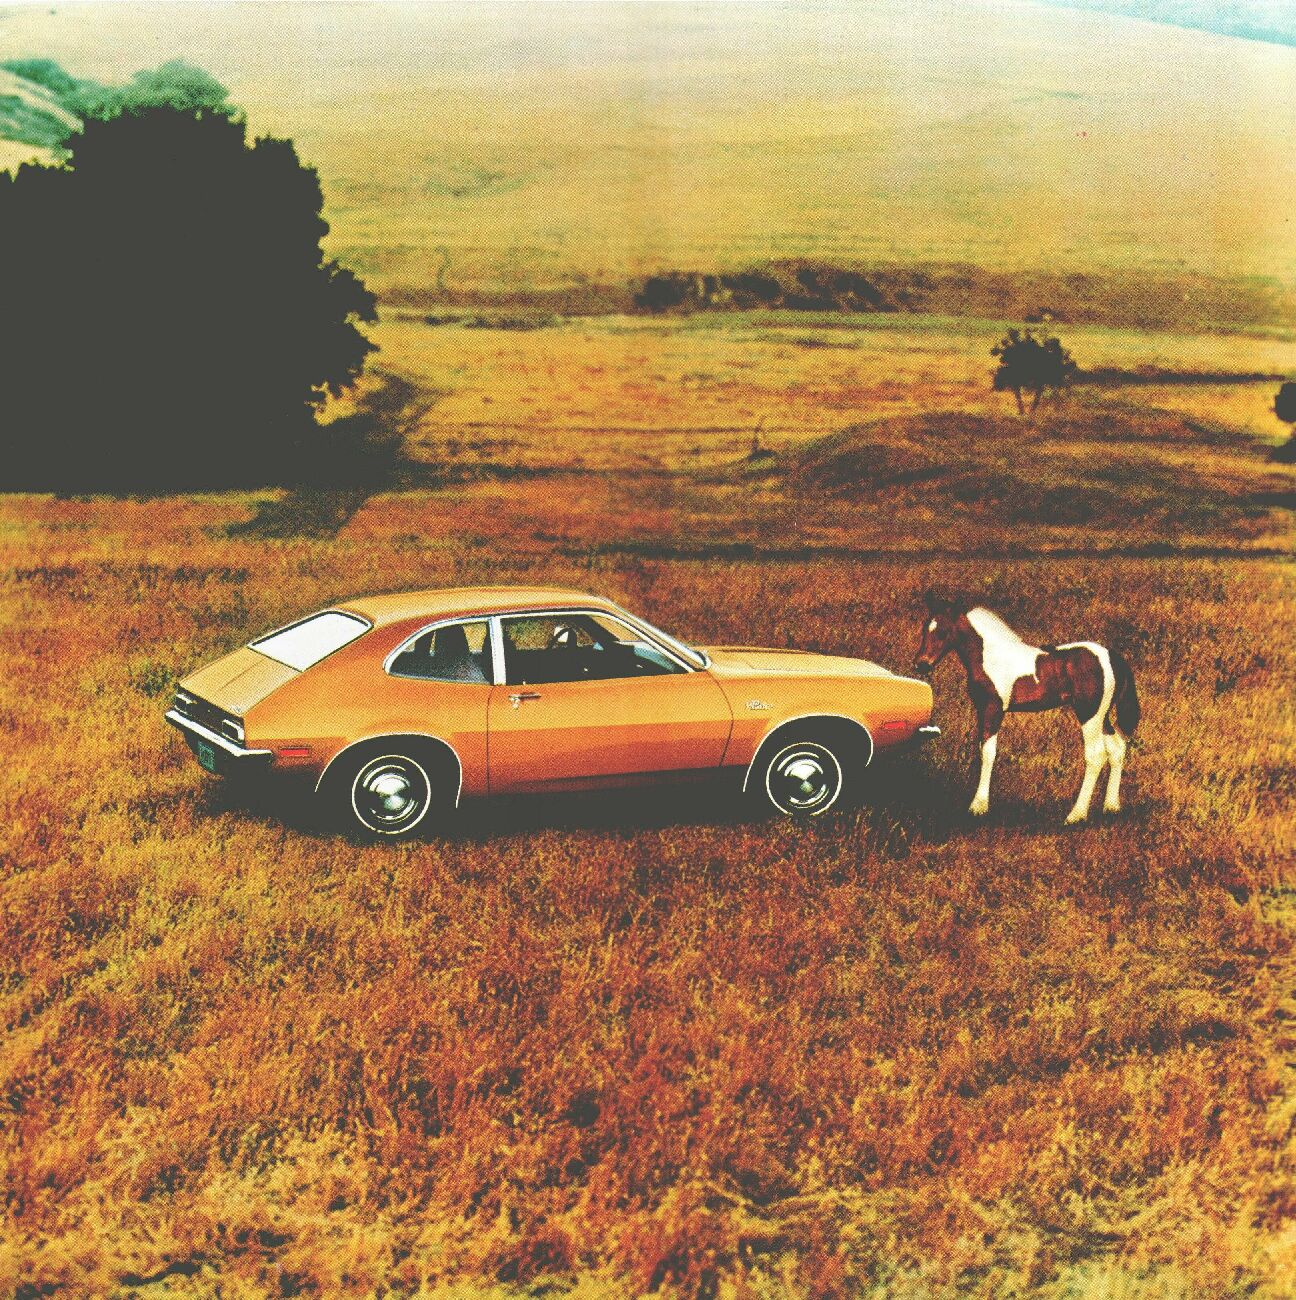 the ford pinto project Fines can be costly an estimated 50 pinto owners from as far away as california and pennsylvania showed off their prized cars amid hundreds of ford's more popular and elegant models at the annual ford employee car show today the pinto stampede raises money for the wounded warrior project.